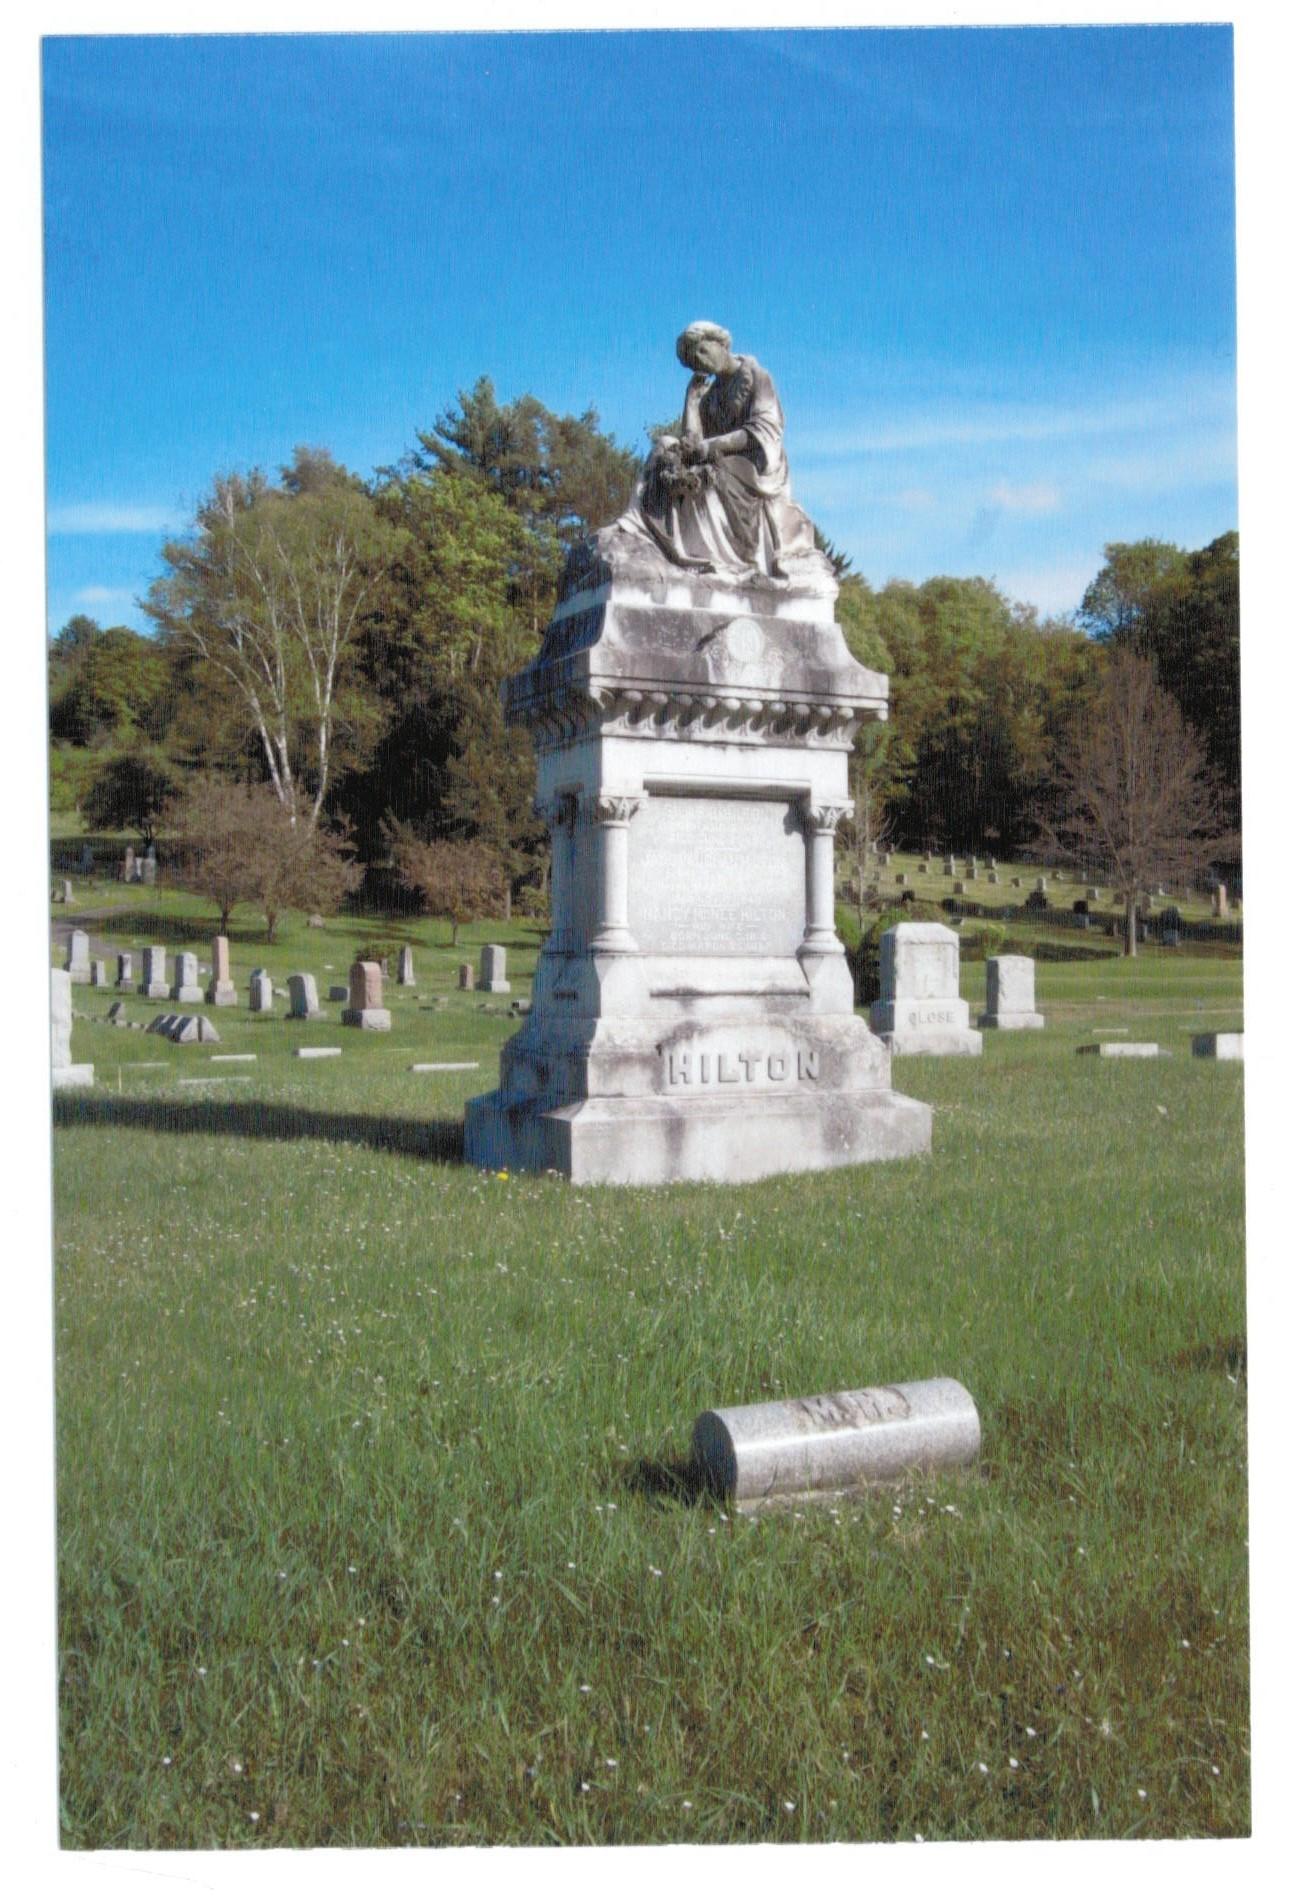 THE ANDES CEMETERY (Coulter Road and the Tremperskill) PART I: History - March 2015